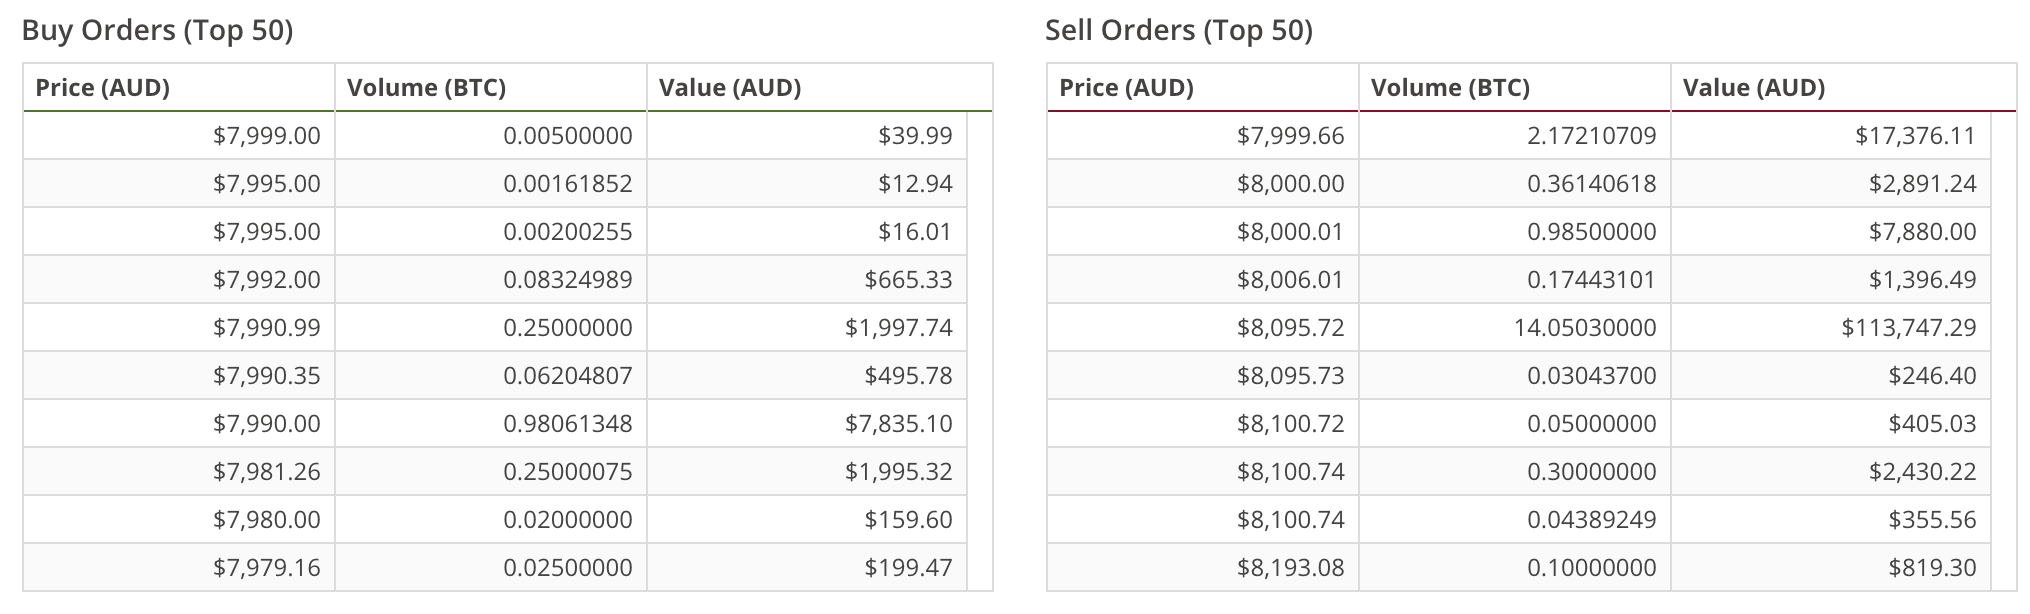 BTC order book 6 Feb 2018